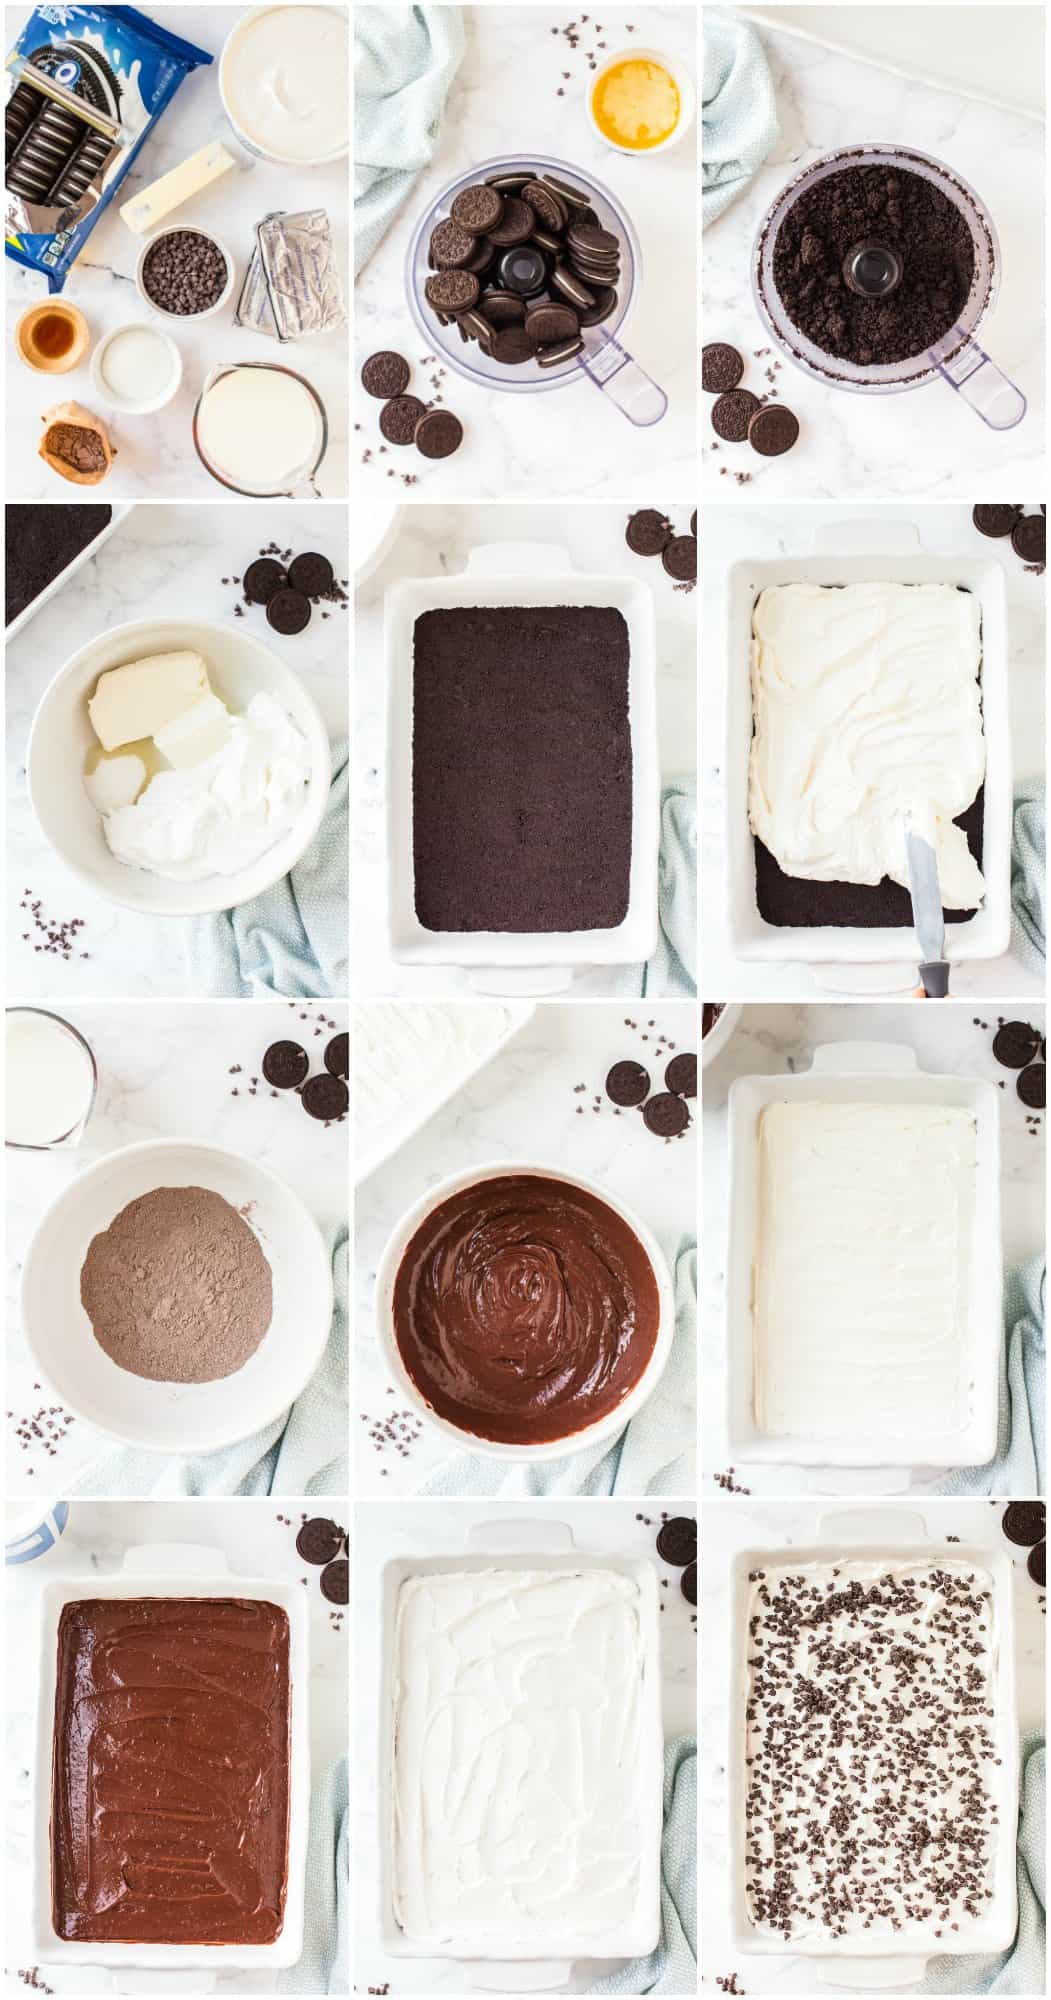 step by step photos of how to make chocolate lasagna